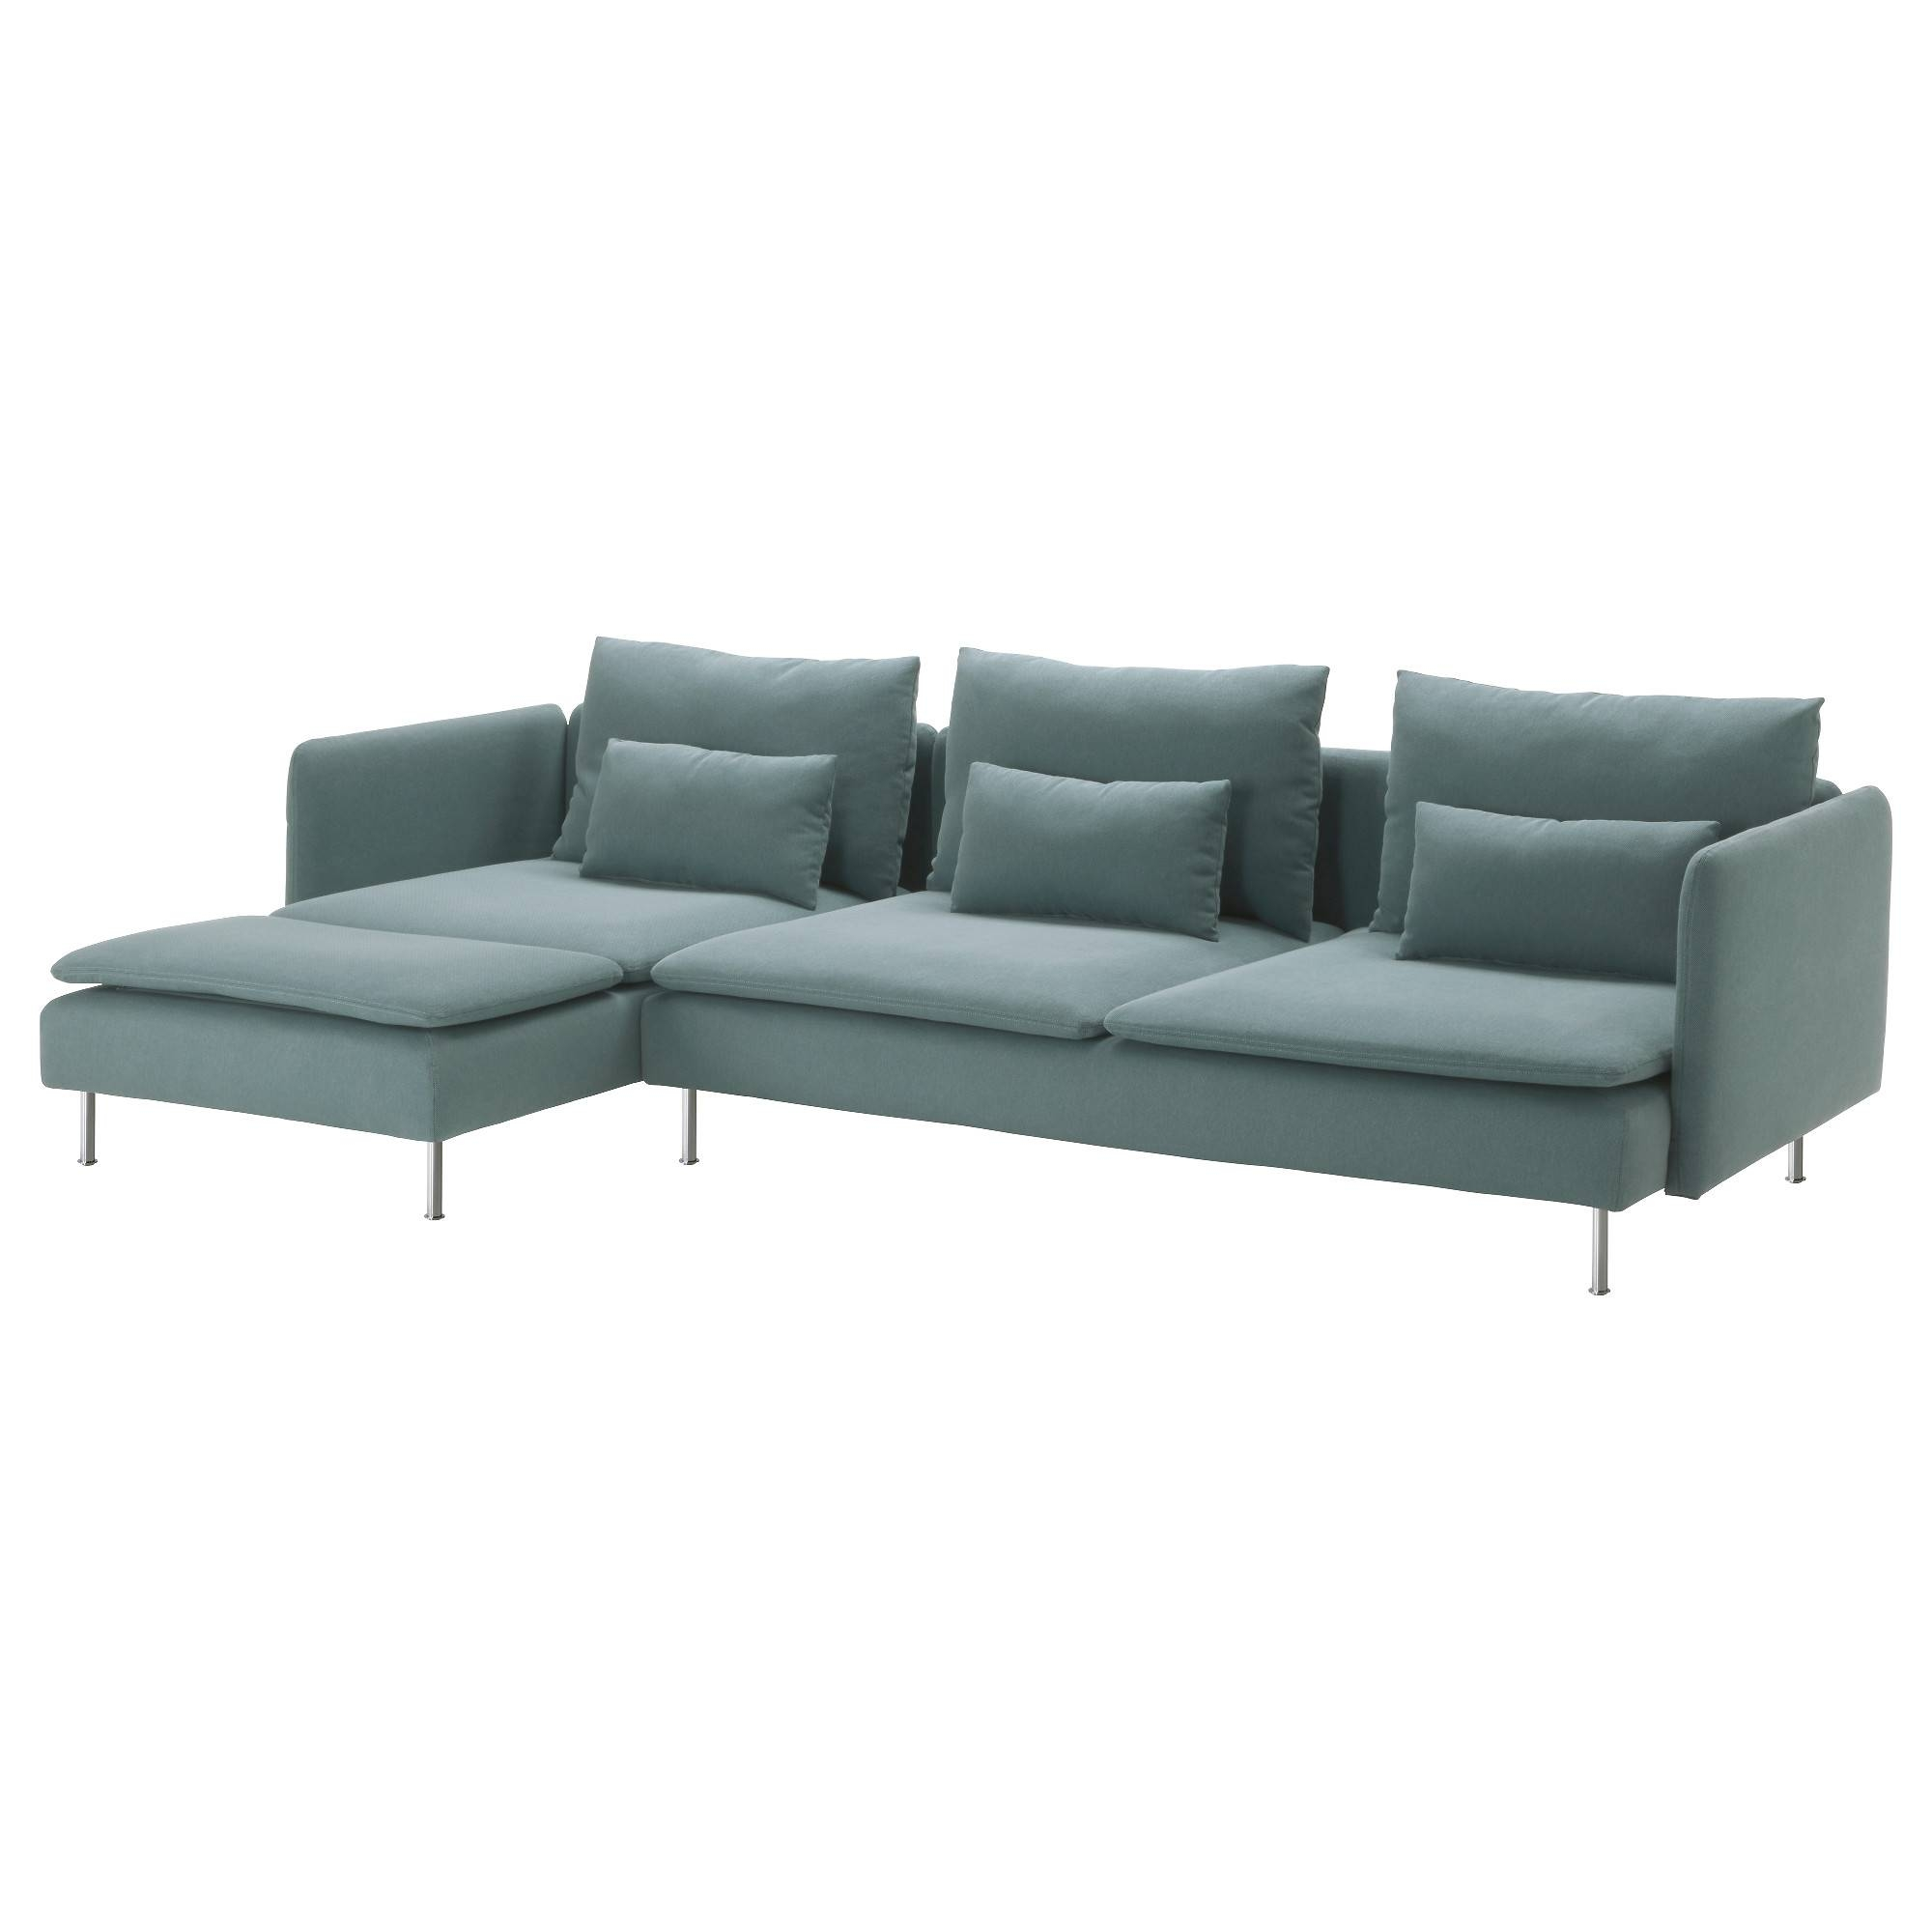 Sectional Sofas & Couches - Ikea regarding Cloud Sectional Sofas (Image 8 of 15)